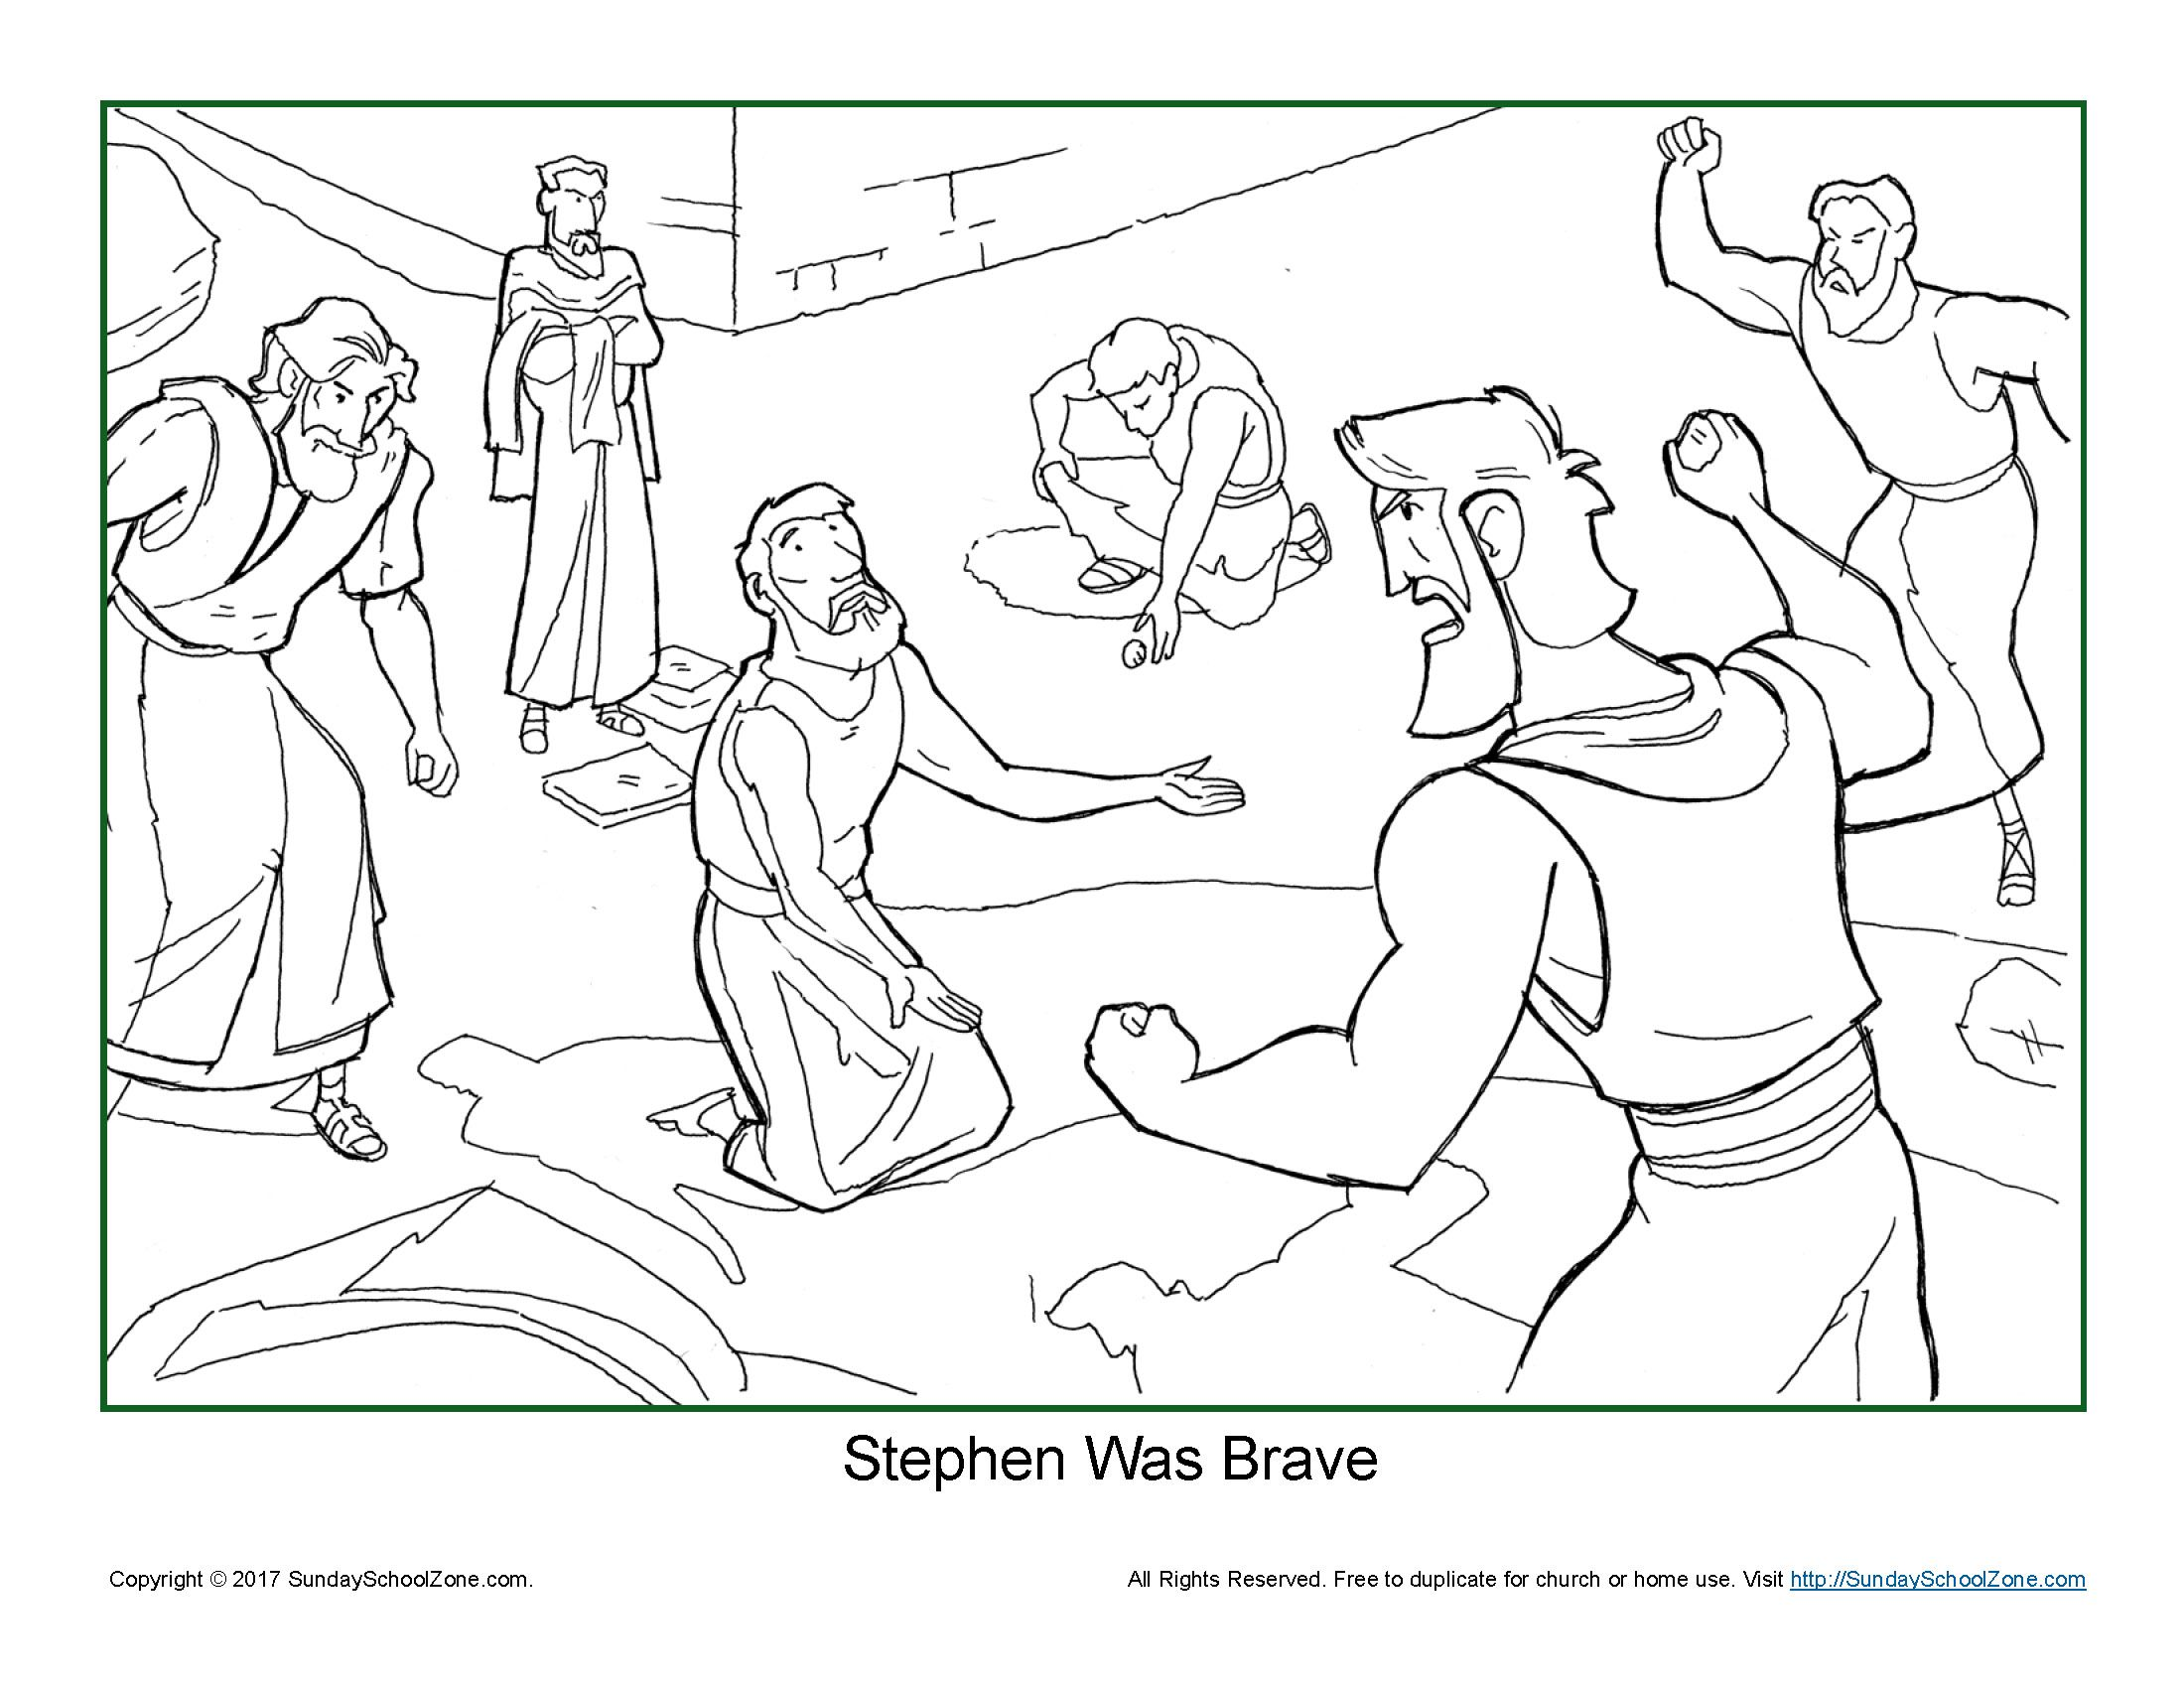 Stephen Was Brave Coloring Page On Sunday School Zone